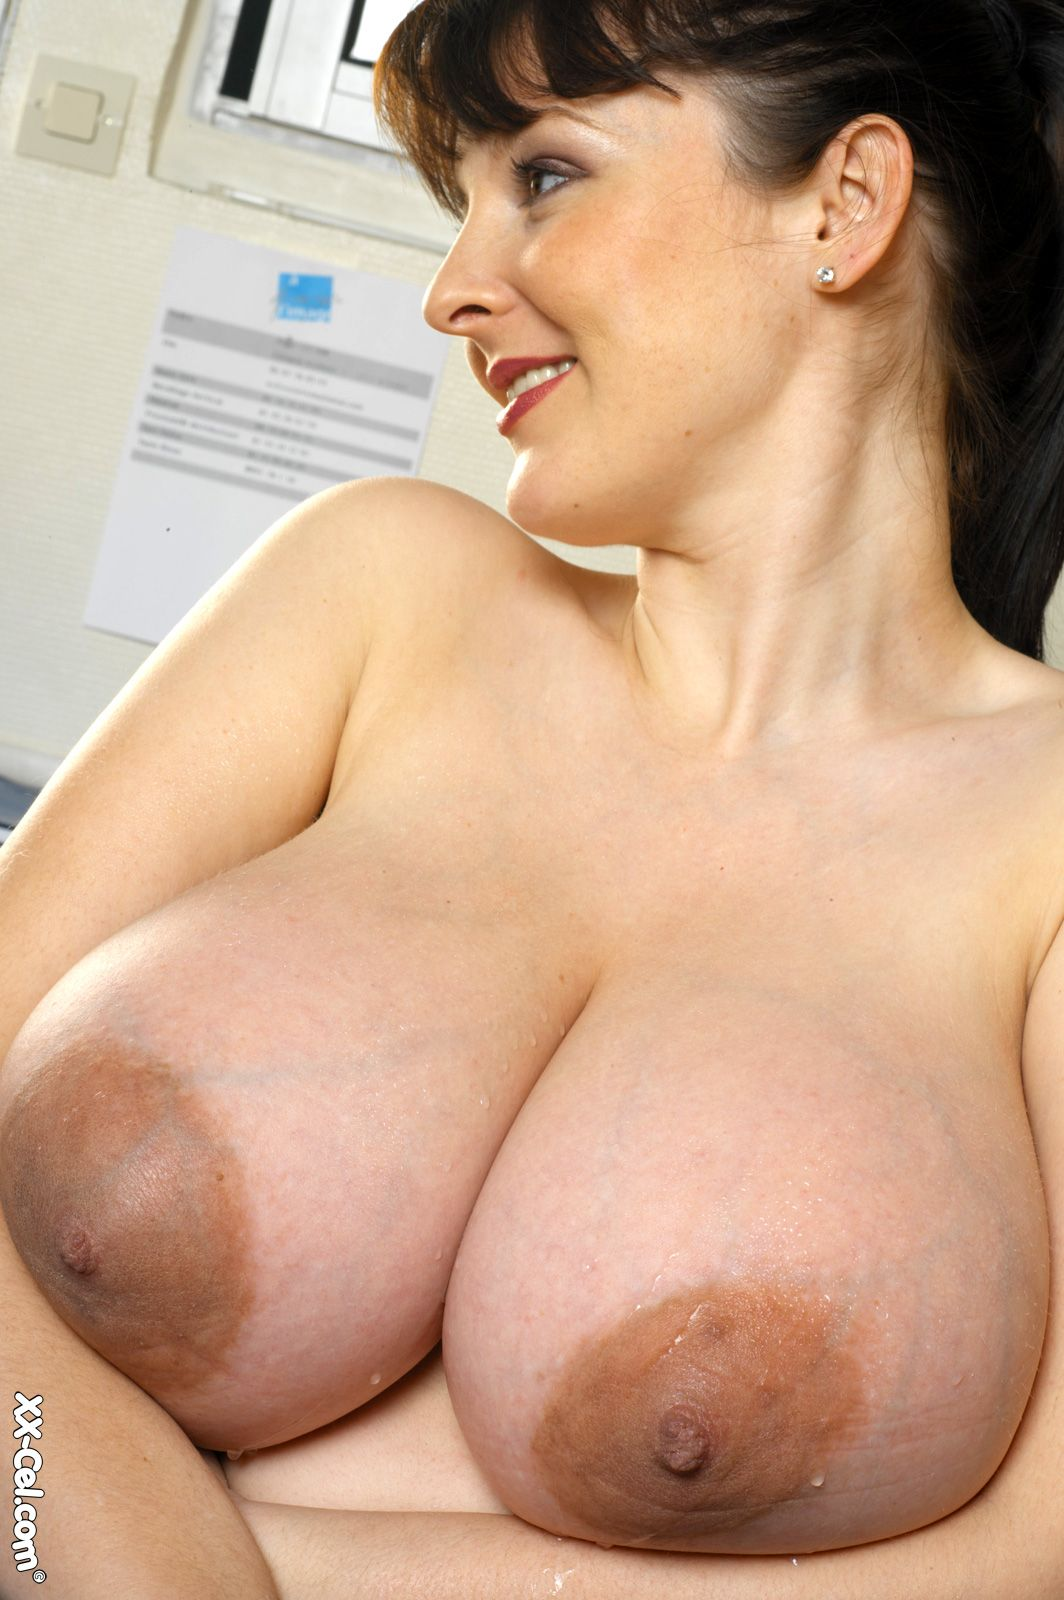 Nipples big natural nude breast dark